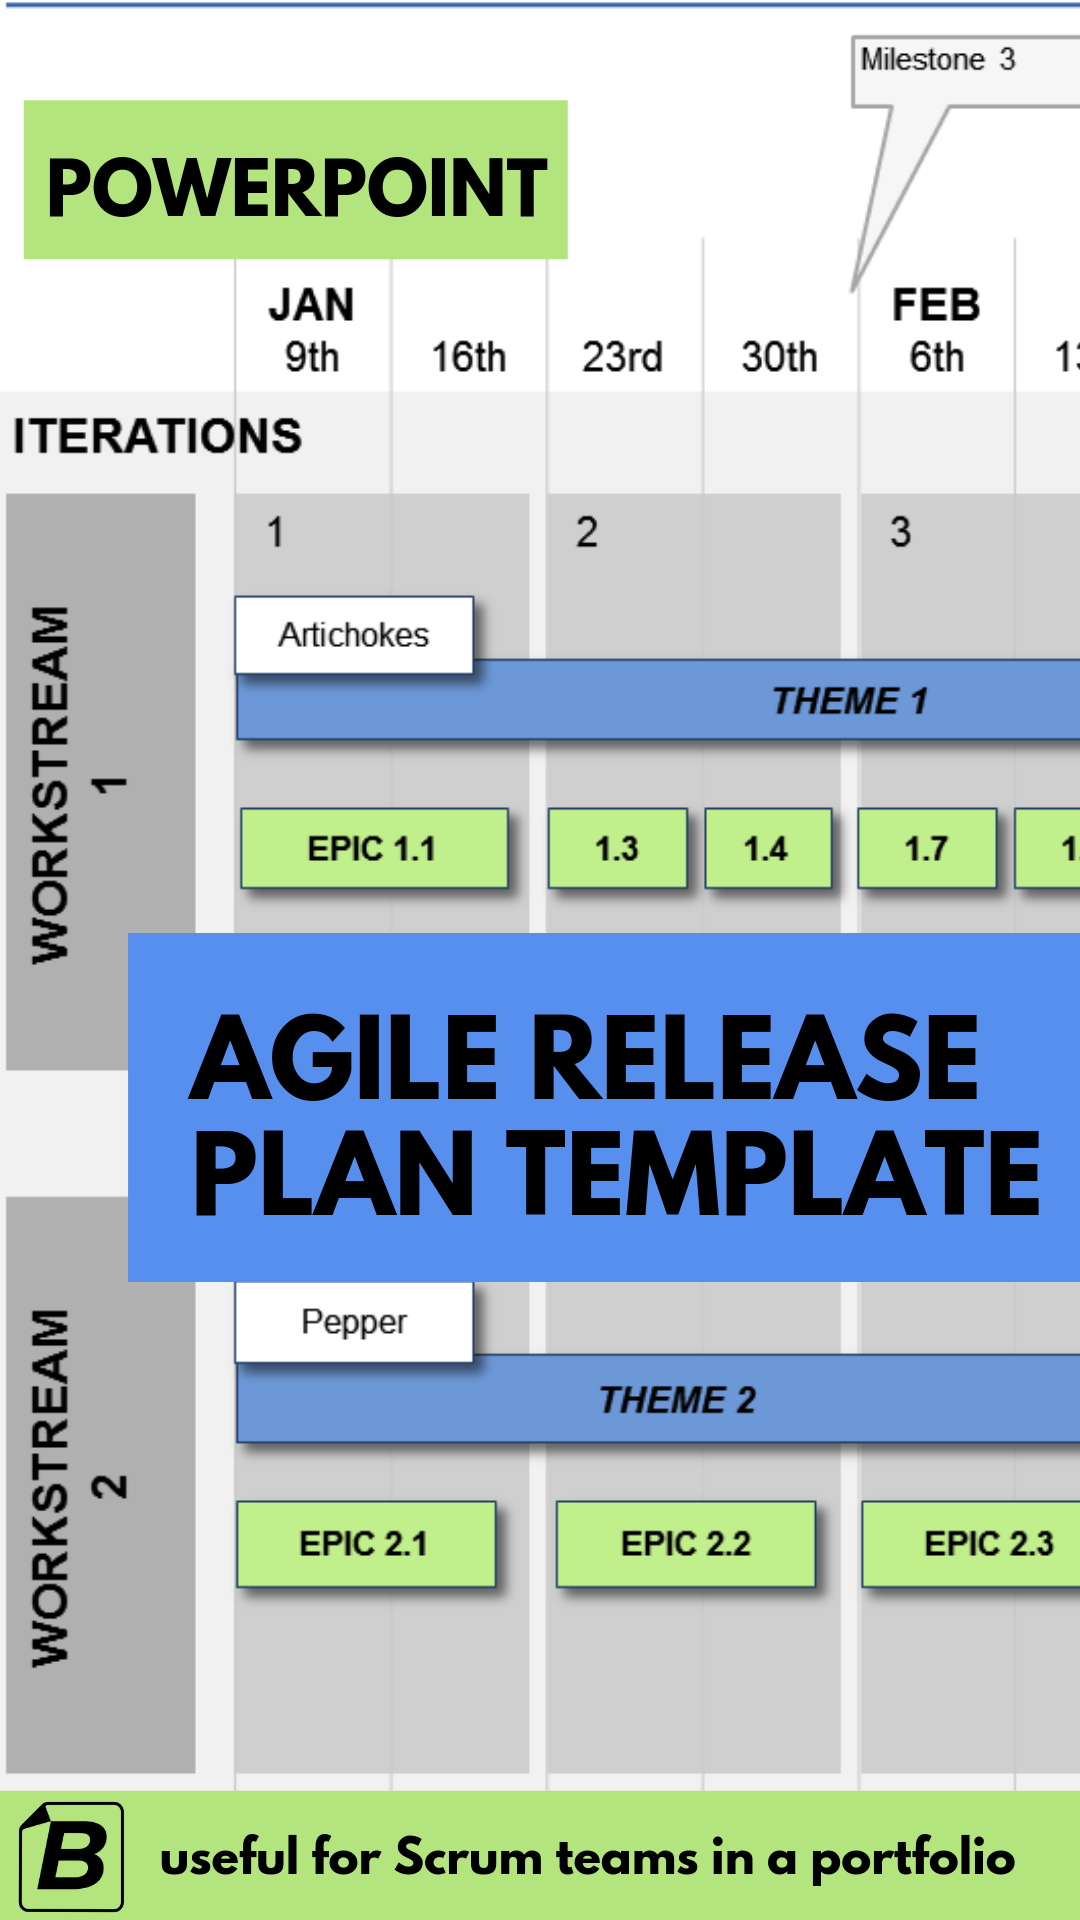 Powerpoint Agile Release Plan Template scrum iterations